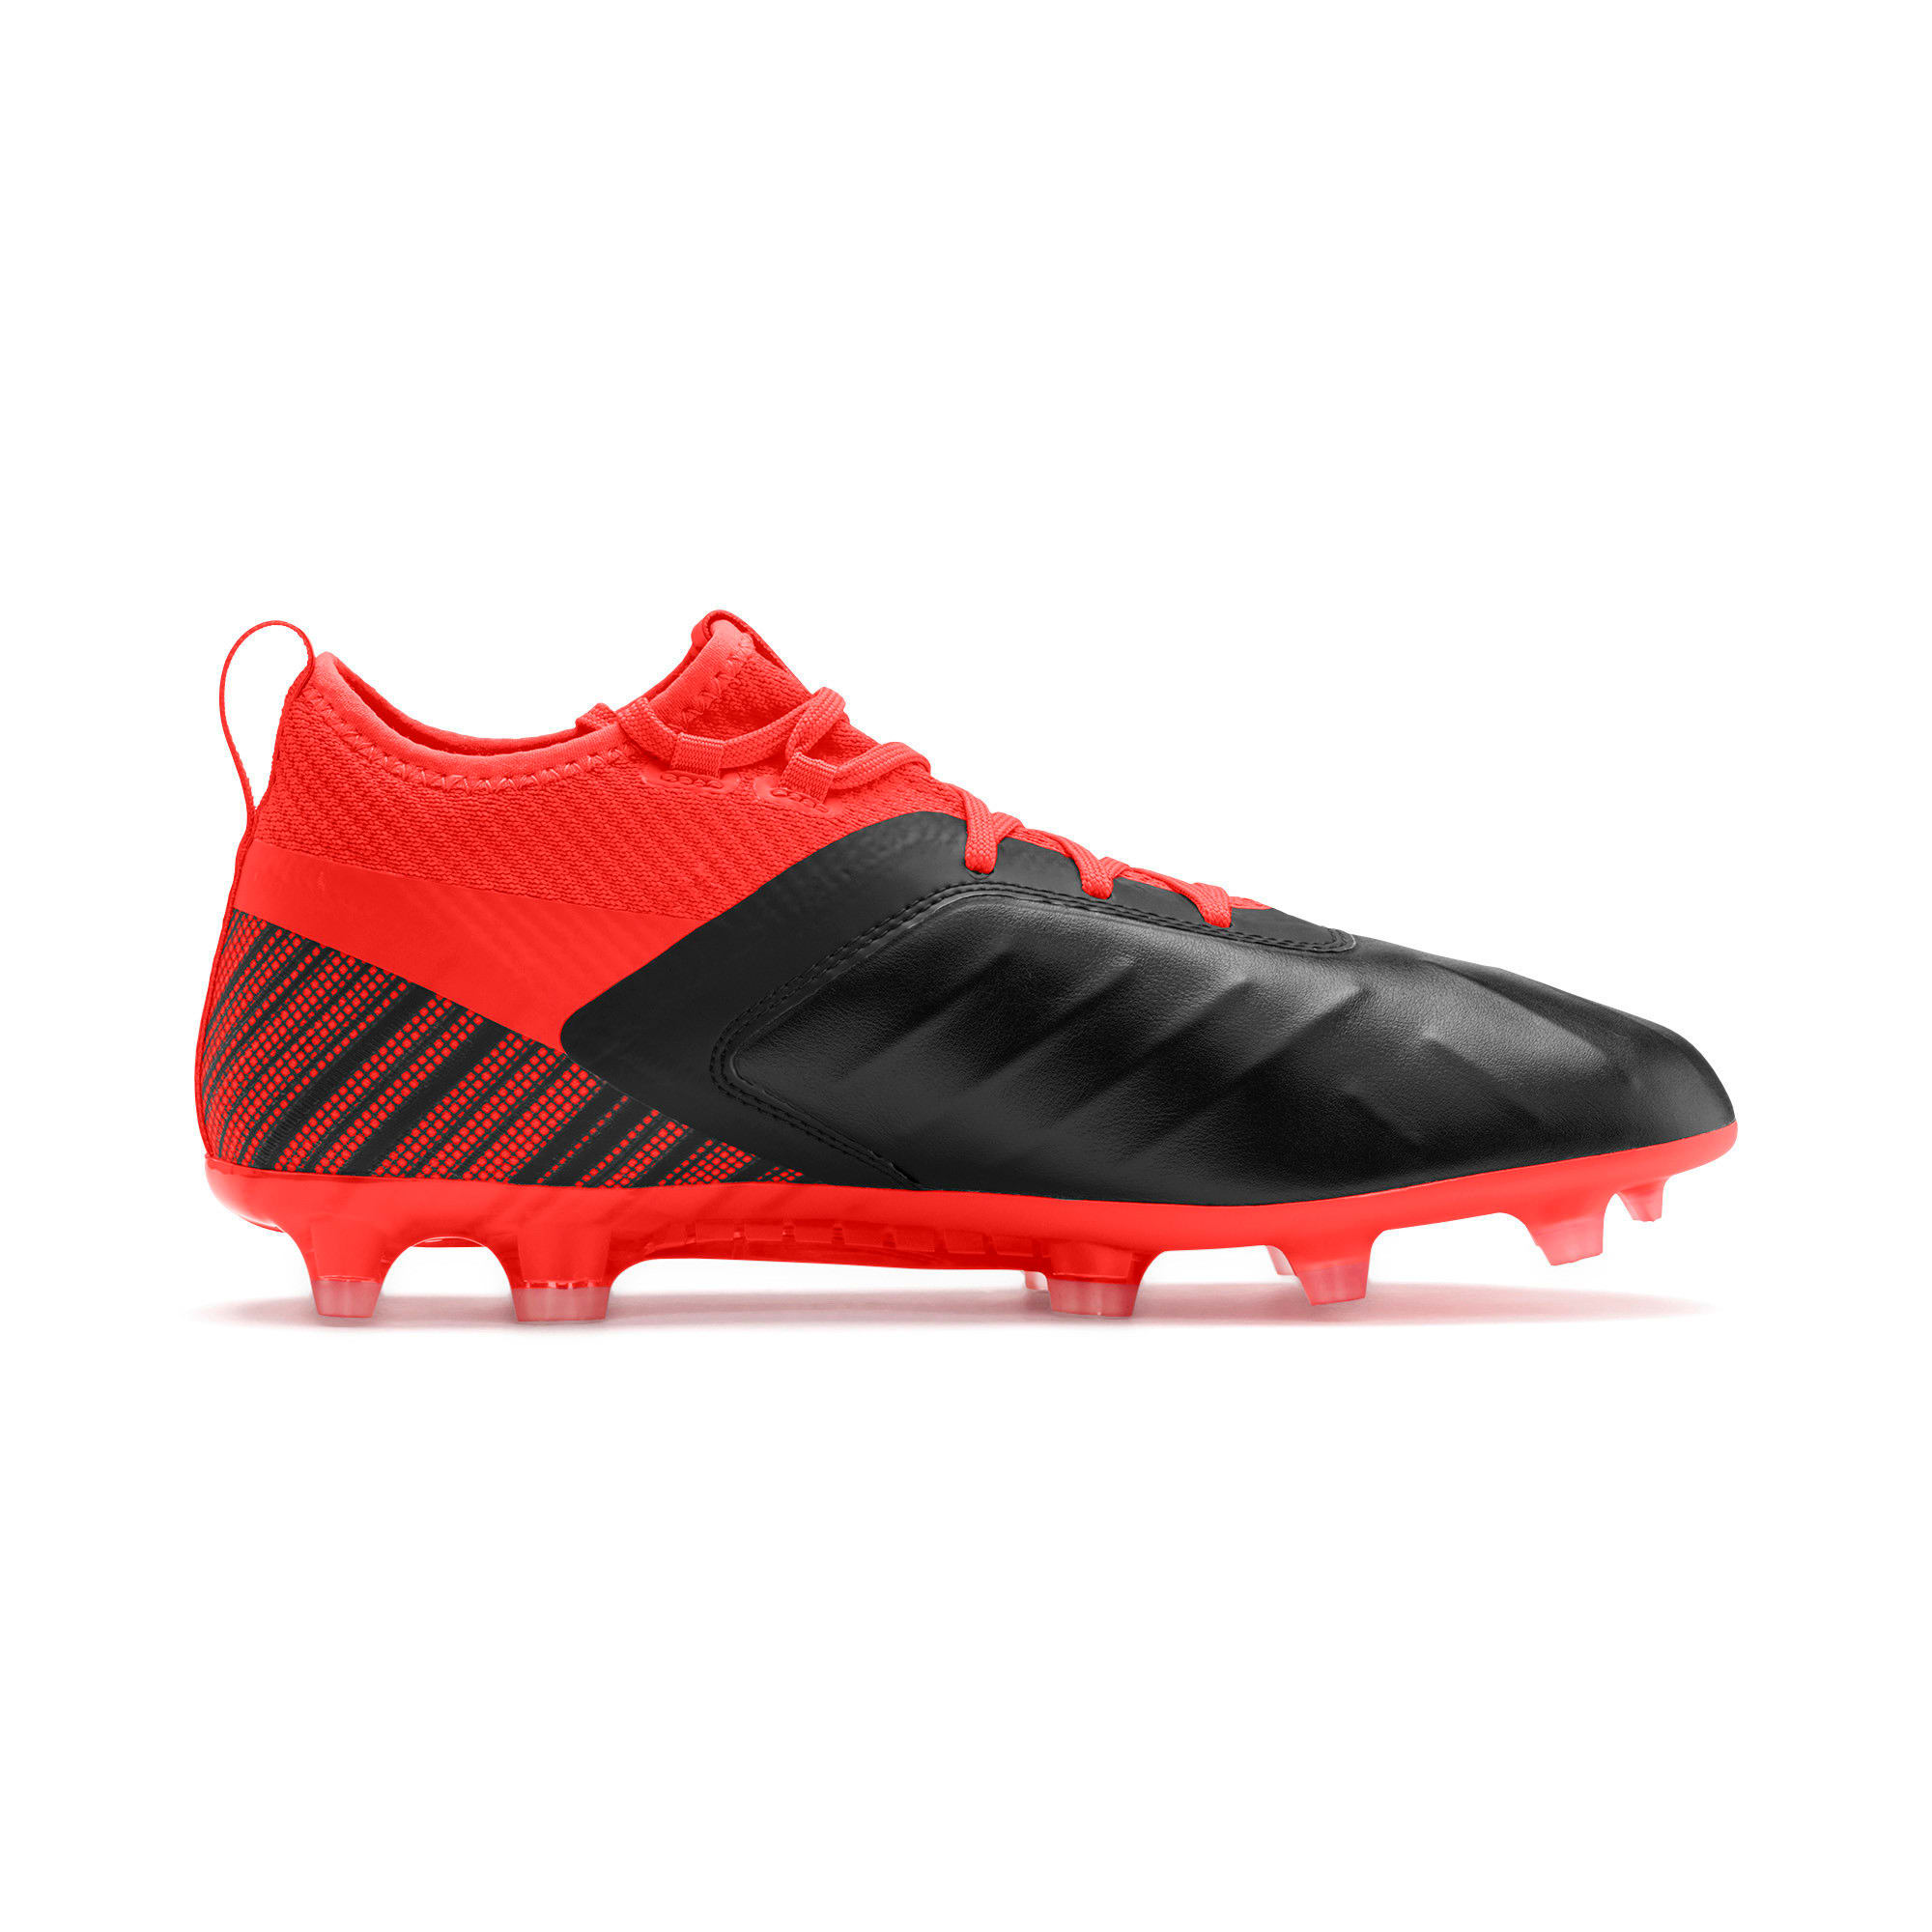 Thumbnail 6 of PUMA ONE 5.2 Men's Football Boots, Black-Nrgy Red-Aged Silver, medium